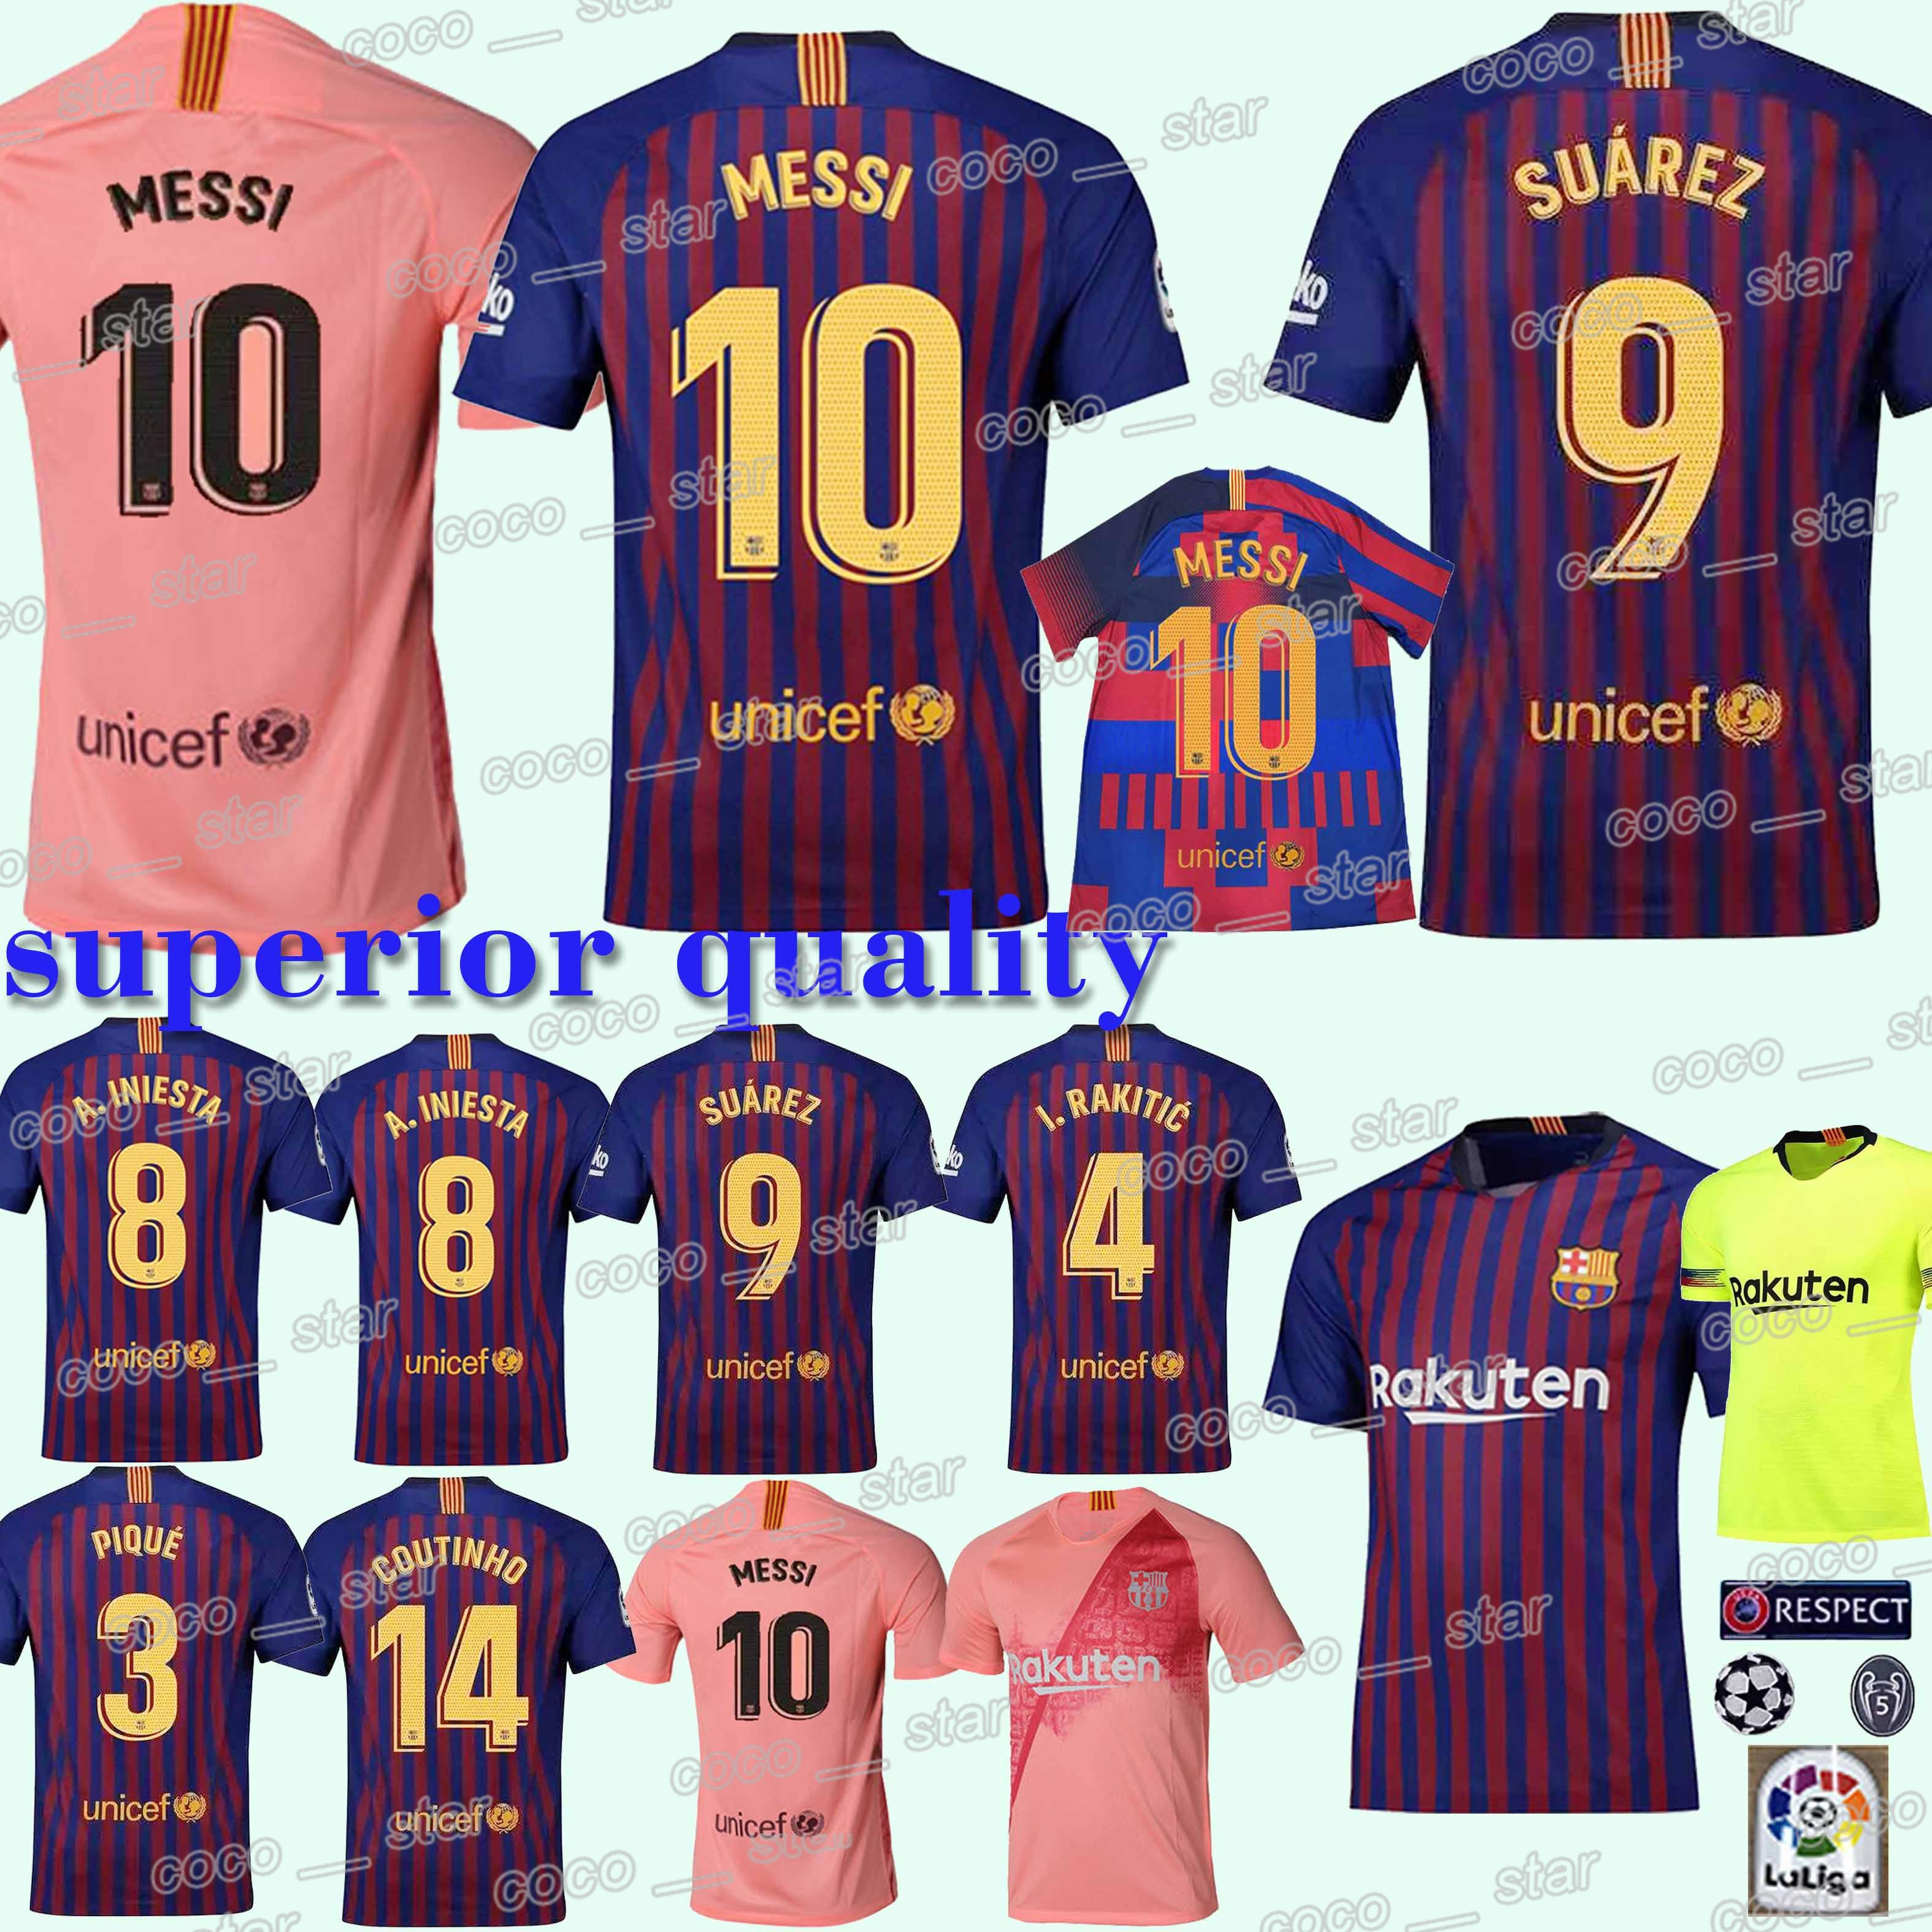 huge selection of 185ad e796c 2019 #10 Messi Barcelona Soccer Jersey SUAREZ O.DEMBELE 18 19 Football  Jerseys Pink PIQUE Messi Club Team Football Uniform From  Best_jerseys_store, ...